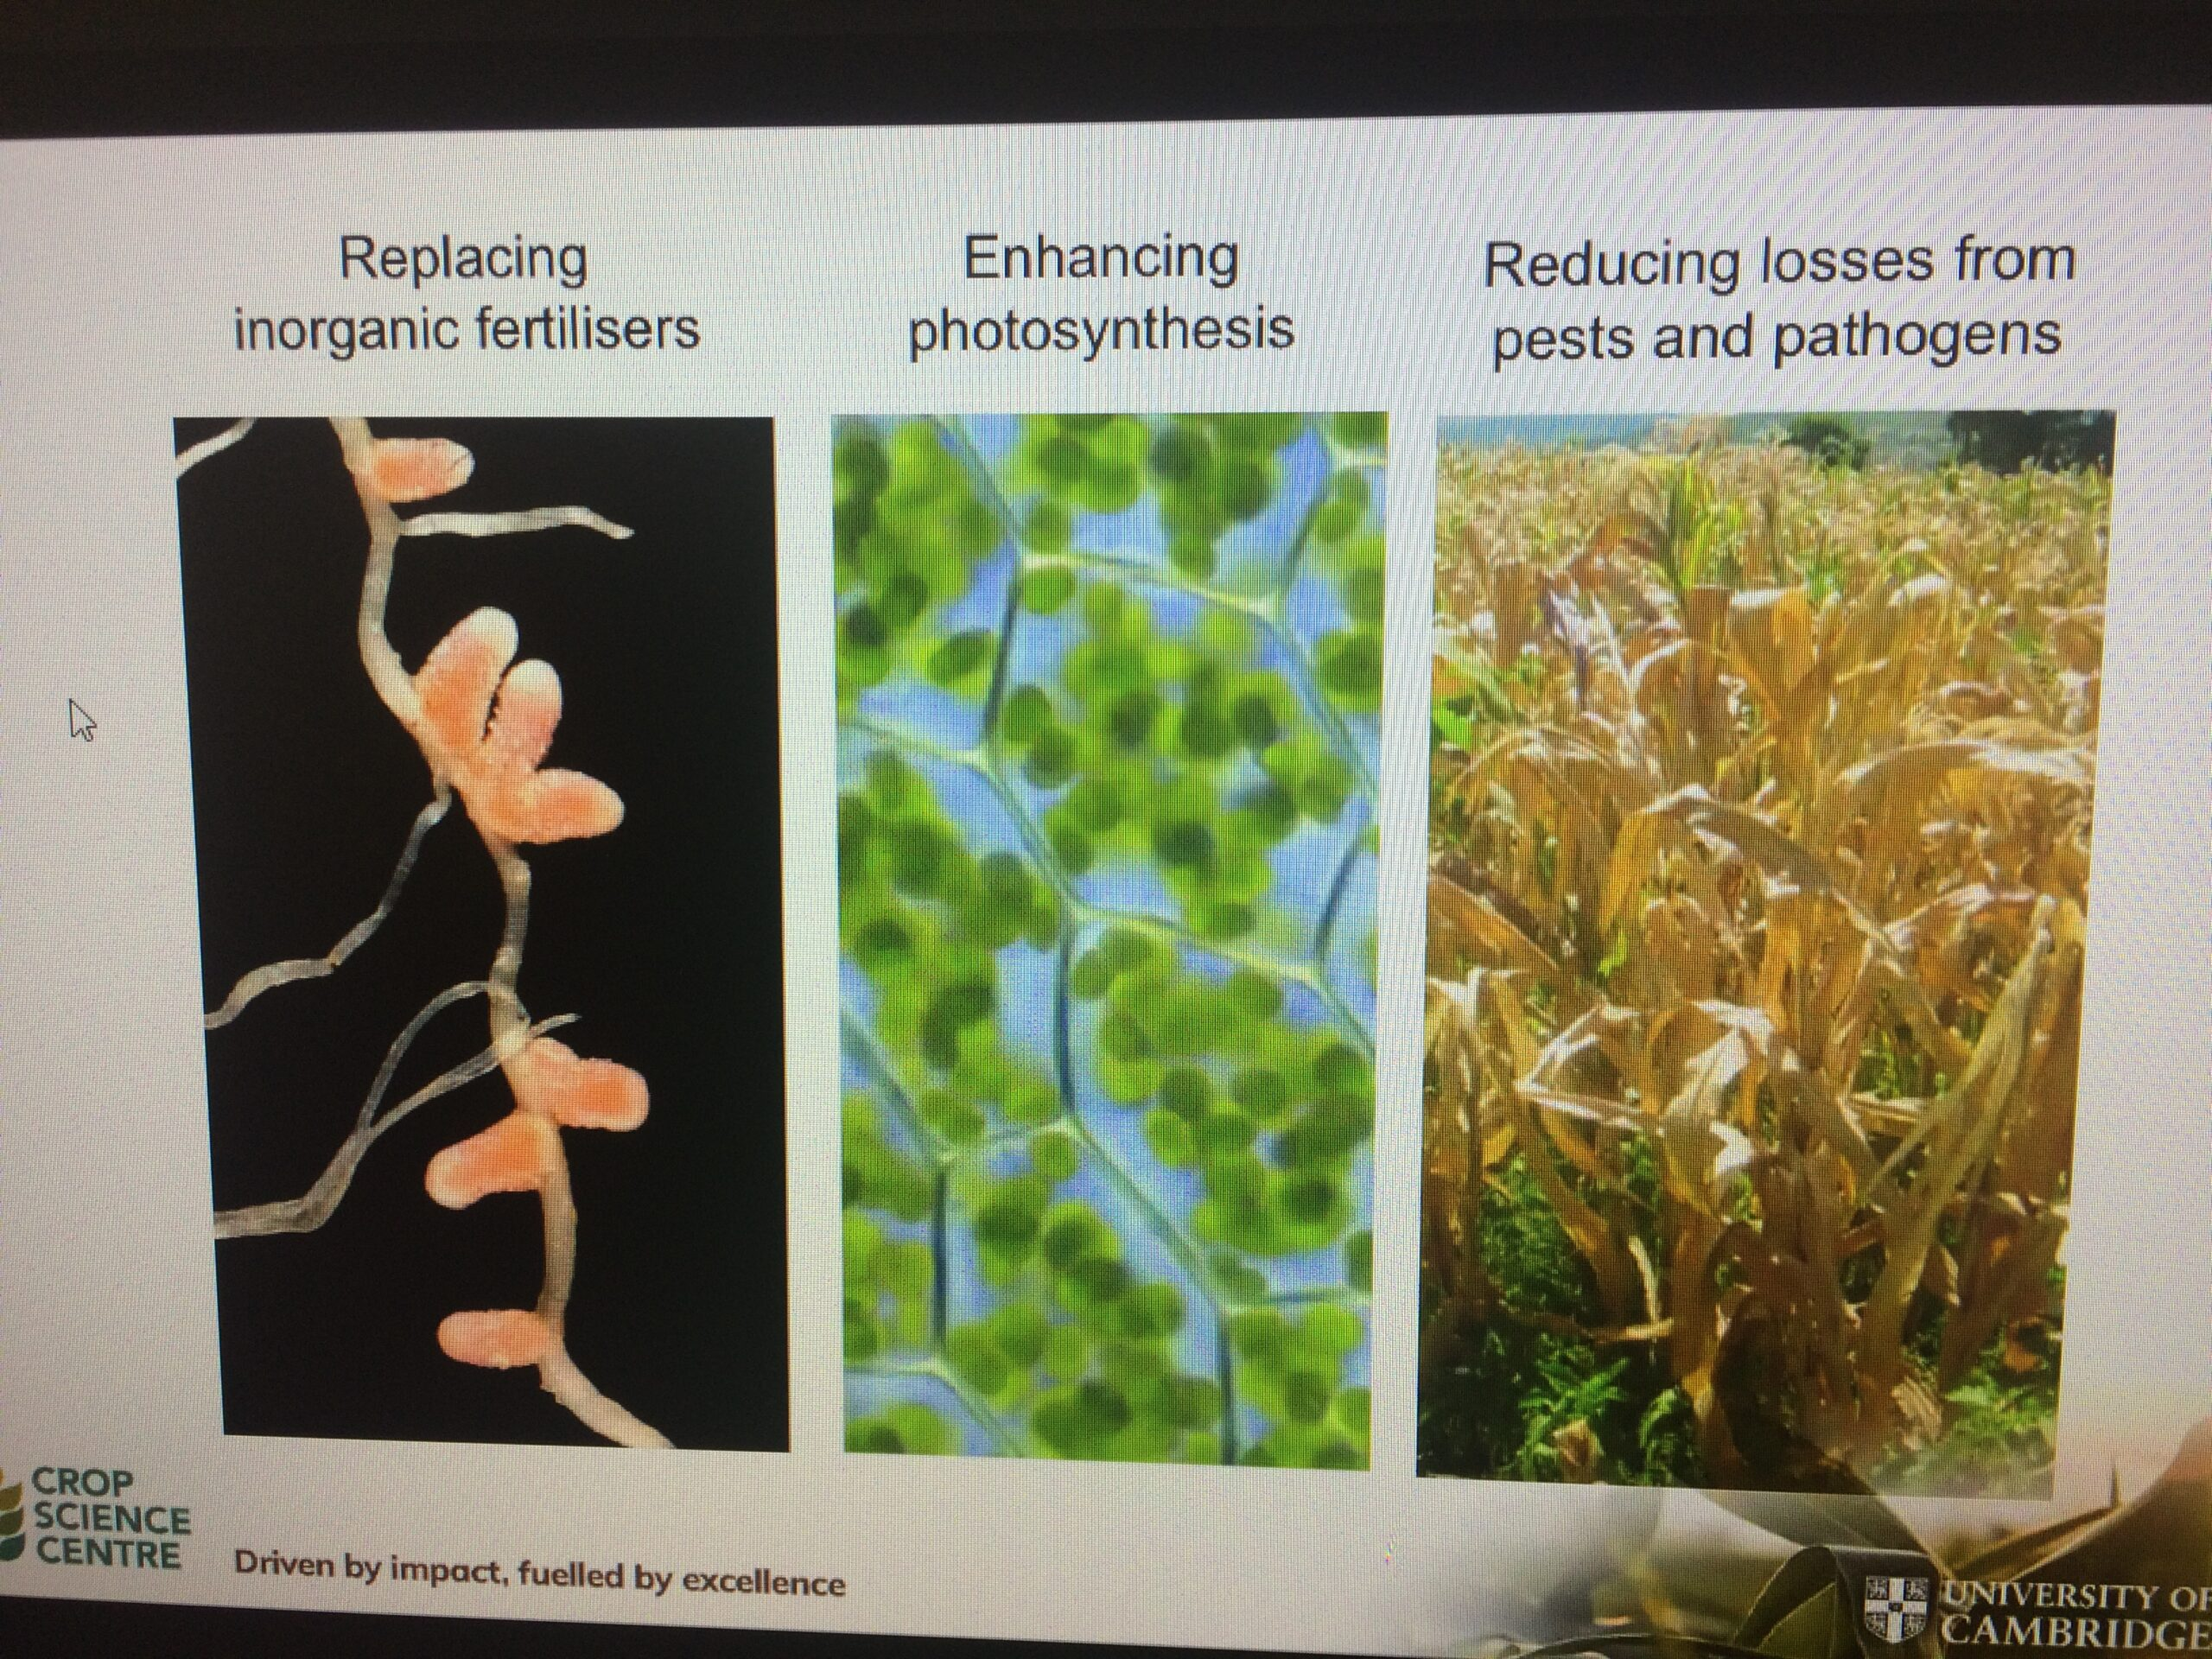 Elements of Crop Science Centre